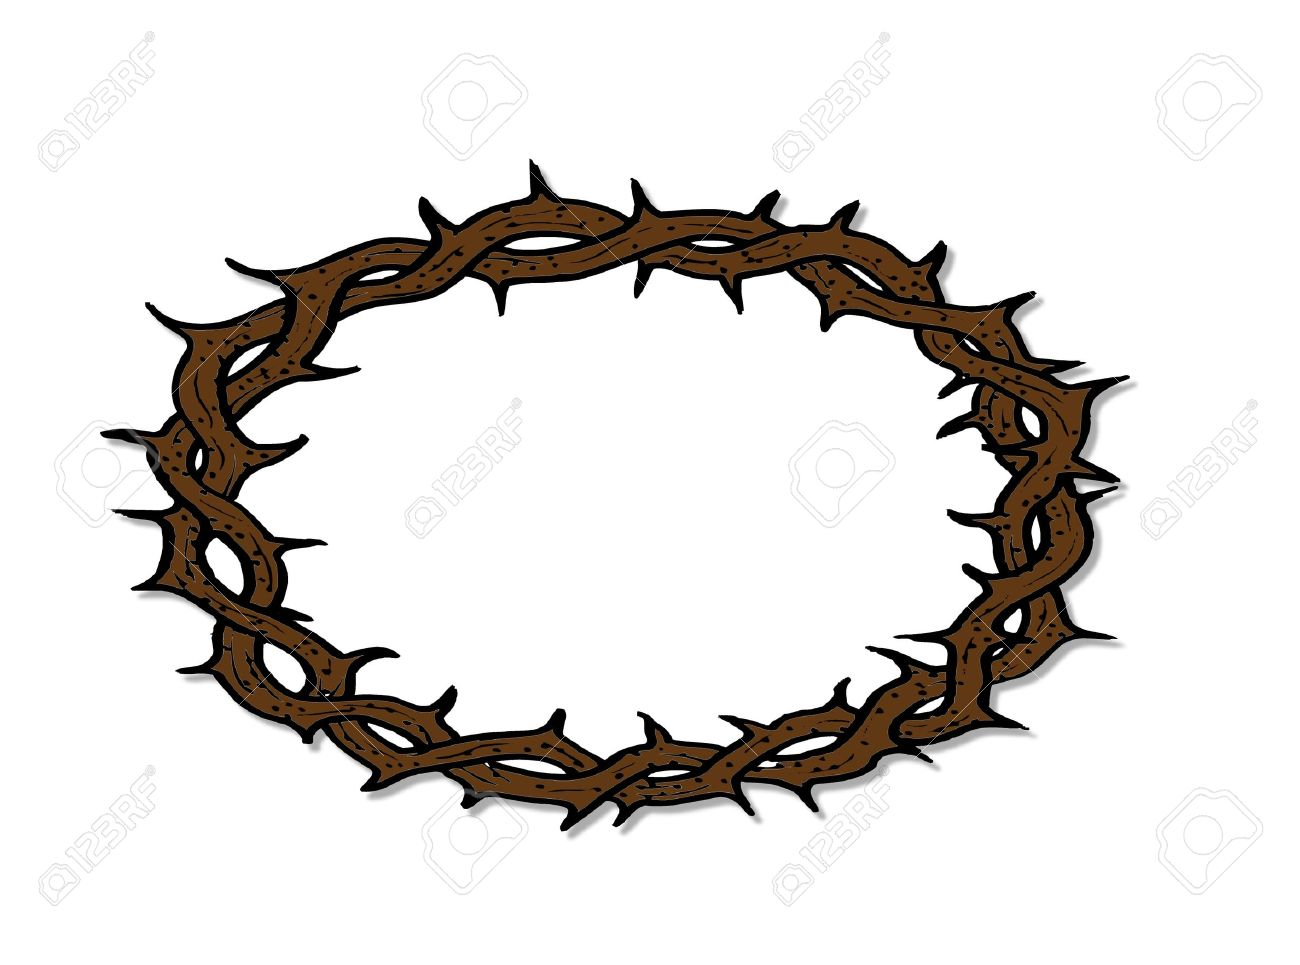 crown of thorns royalty free cliparts vectors and stock rh 123rf com Crown of Thorns Vector Easter Crown of Thorns